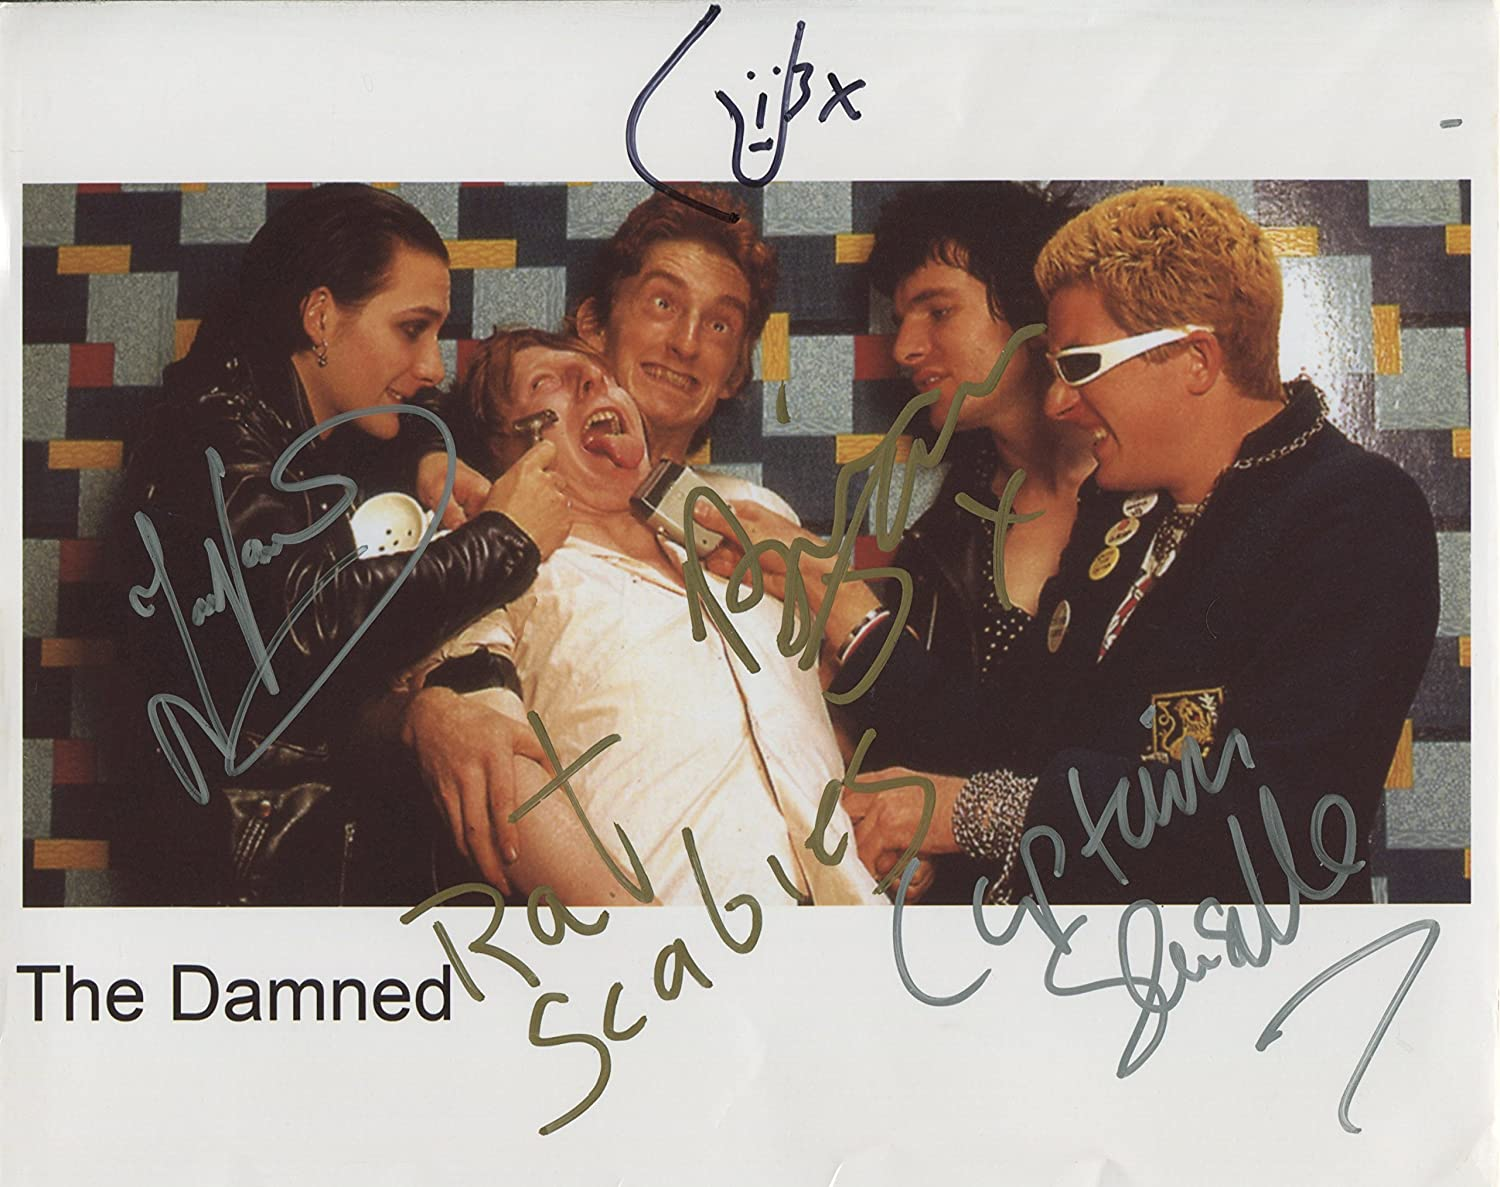 The Damned SIGNED Photo 1st Generation PRINT Ltd 150 1 Certificate